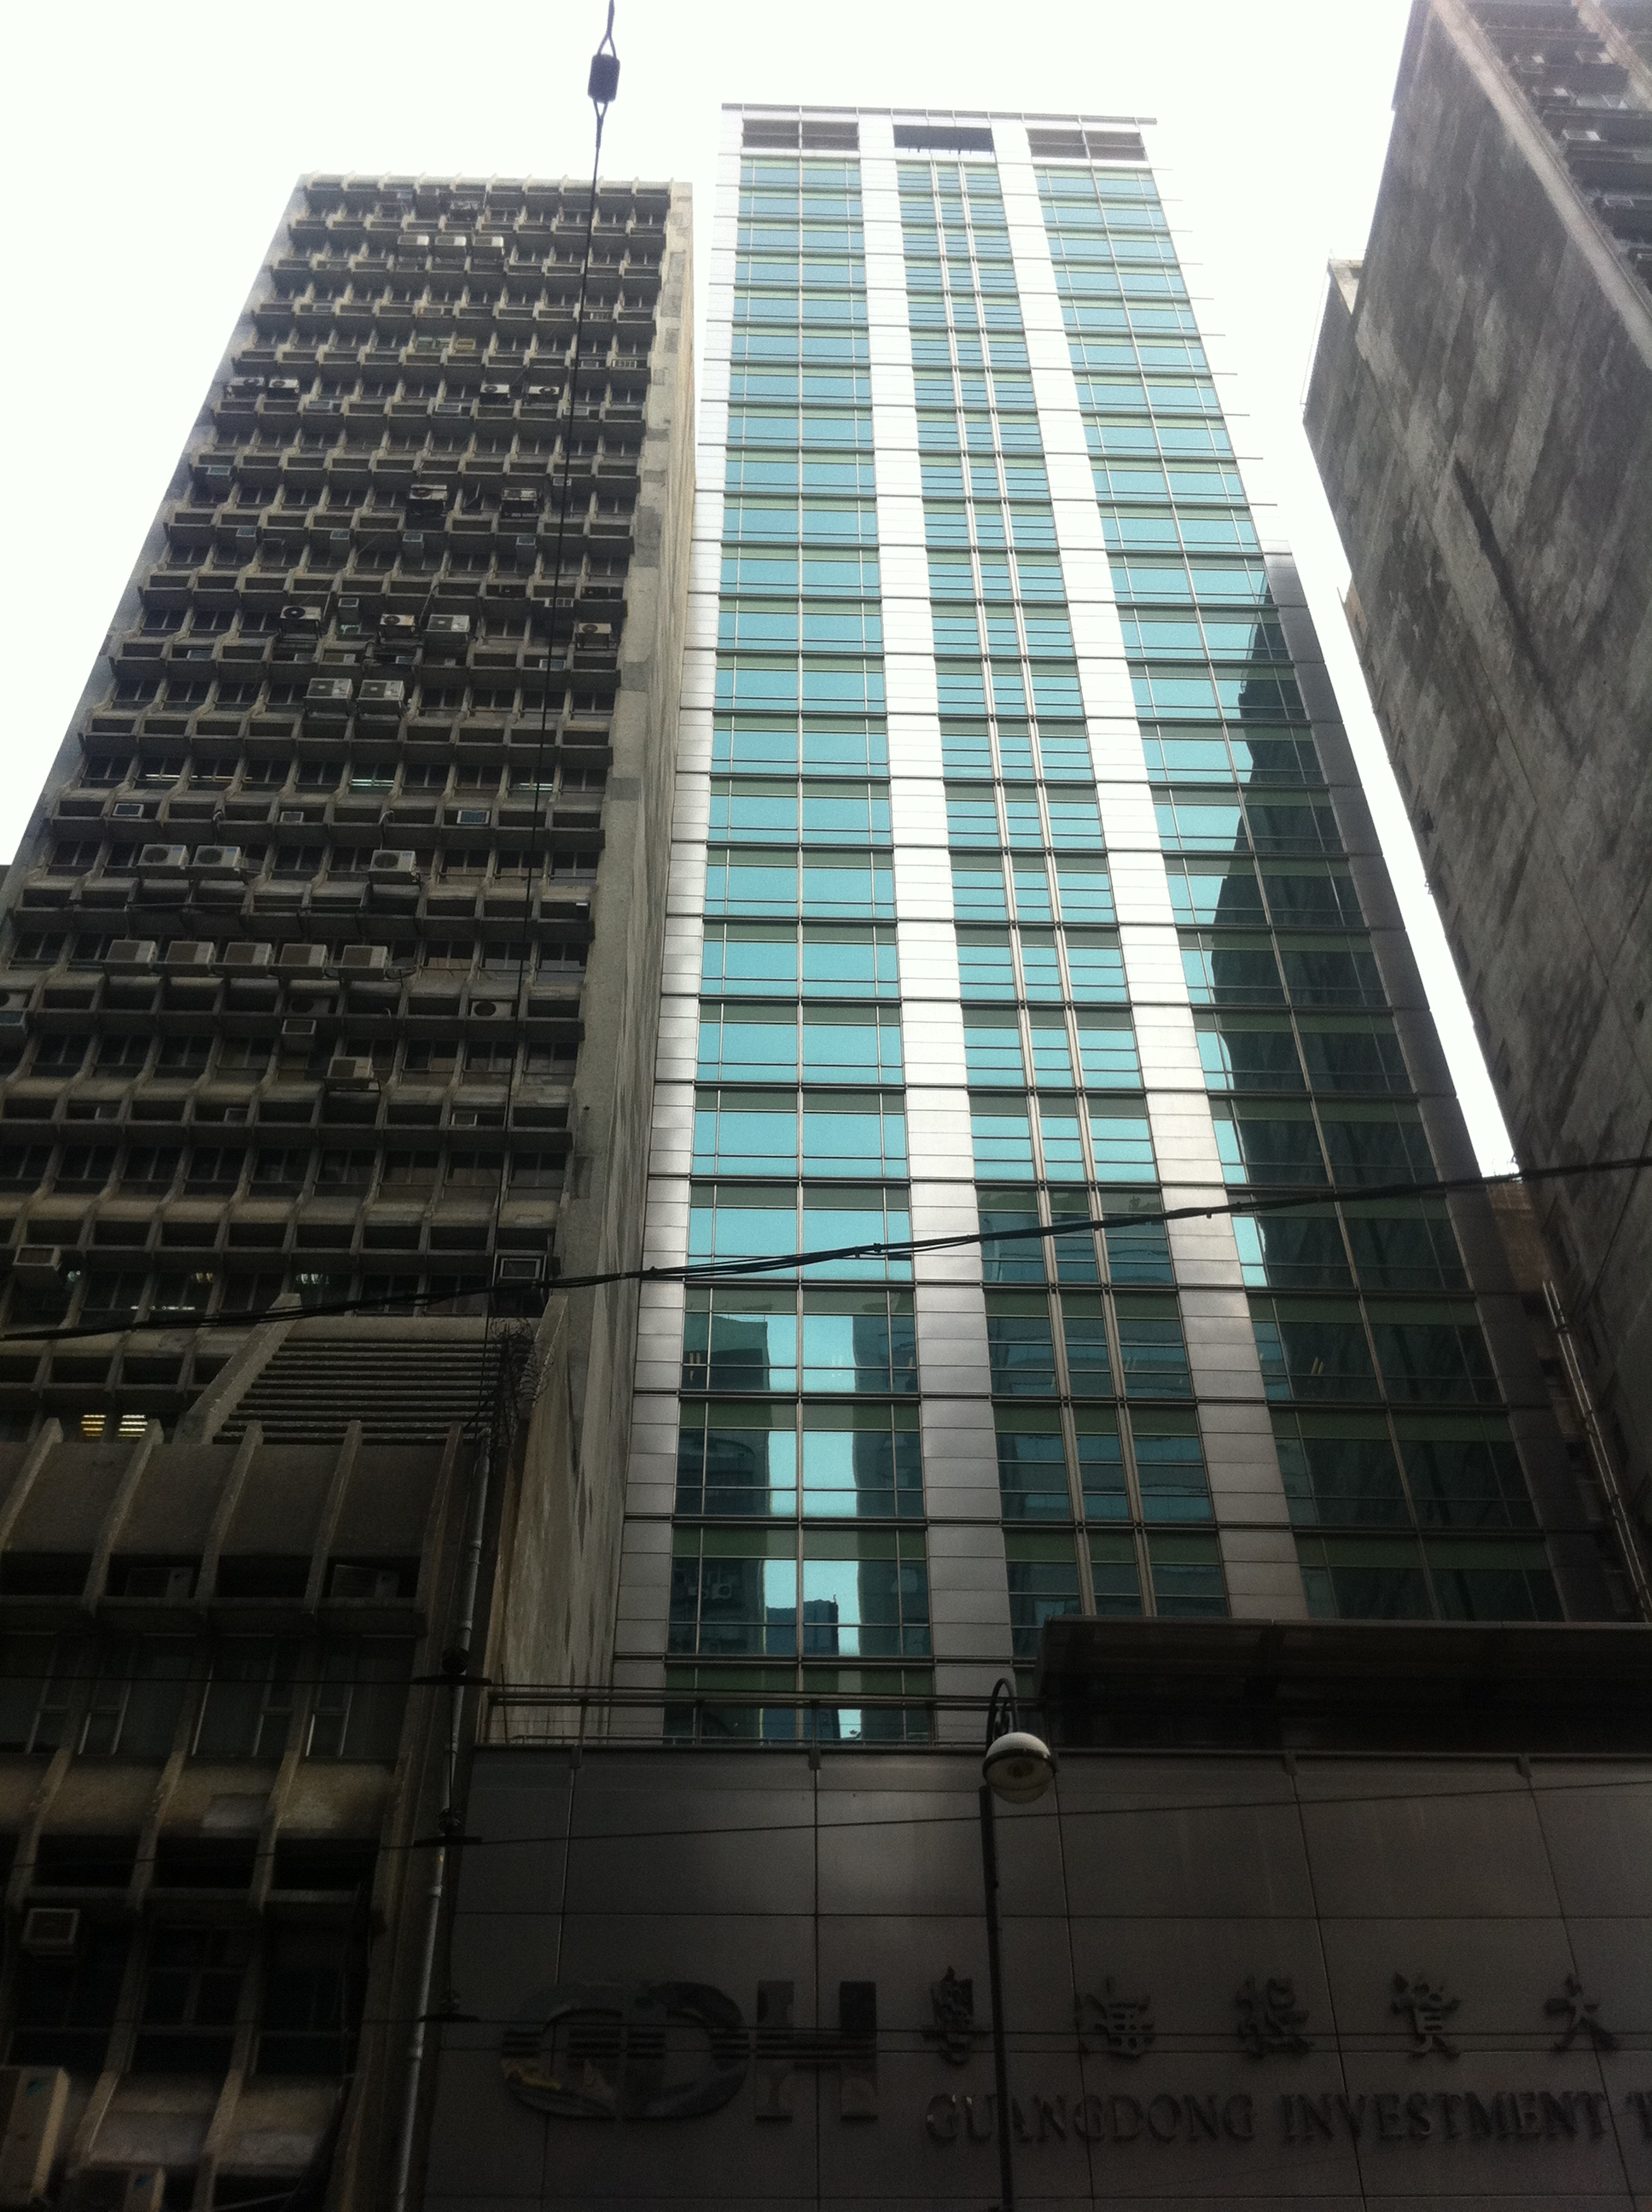 http://com.treasureland.com.hk/wp-content/uploads/wpallimport/Guangdong%20Investment%20Tower.jpg